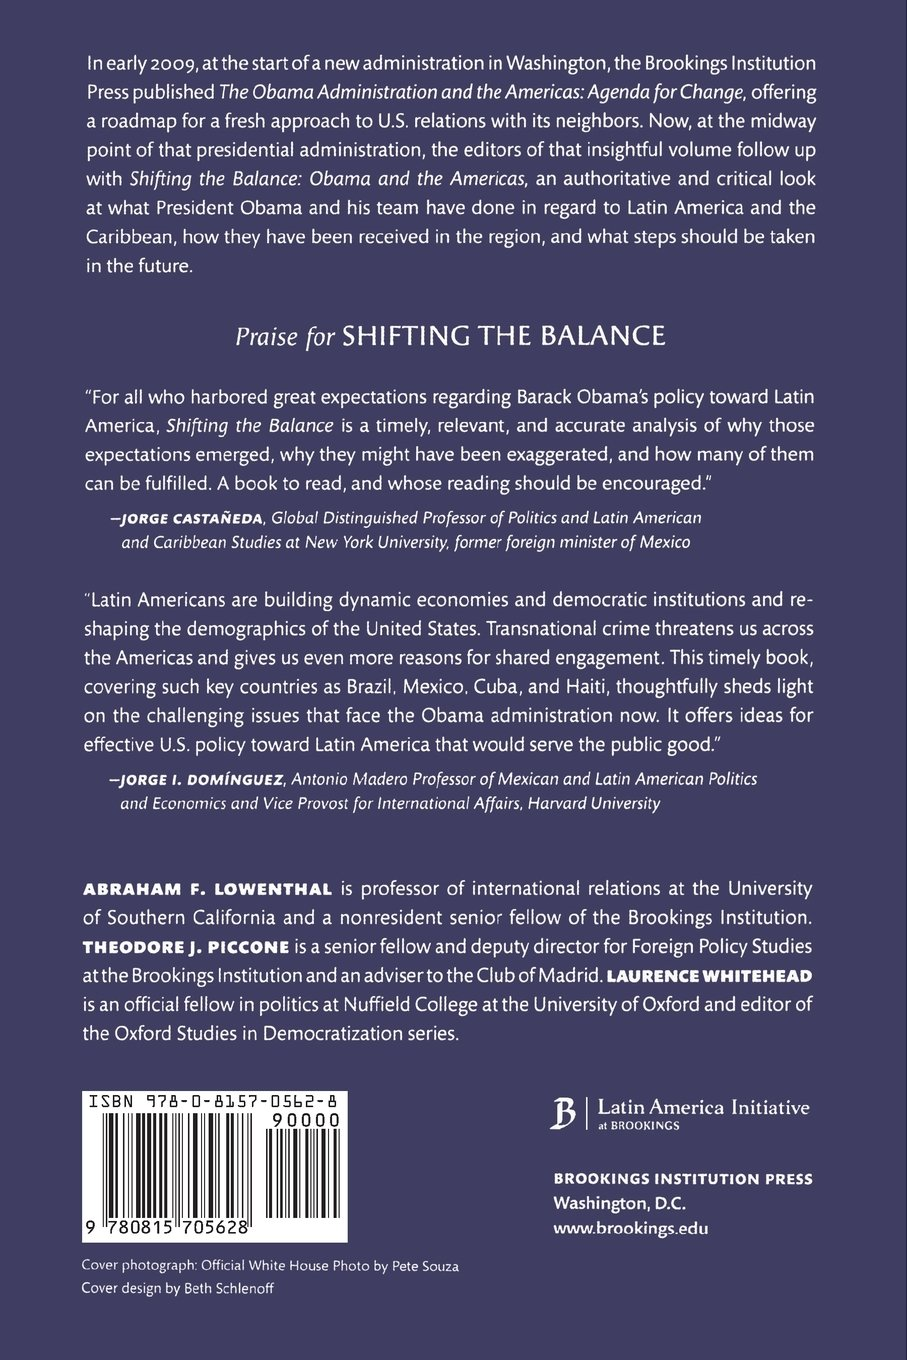 Shifting the Balance: Obama and the Americas (Brookings Latin America Initiative Books)